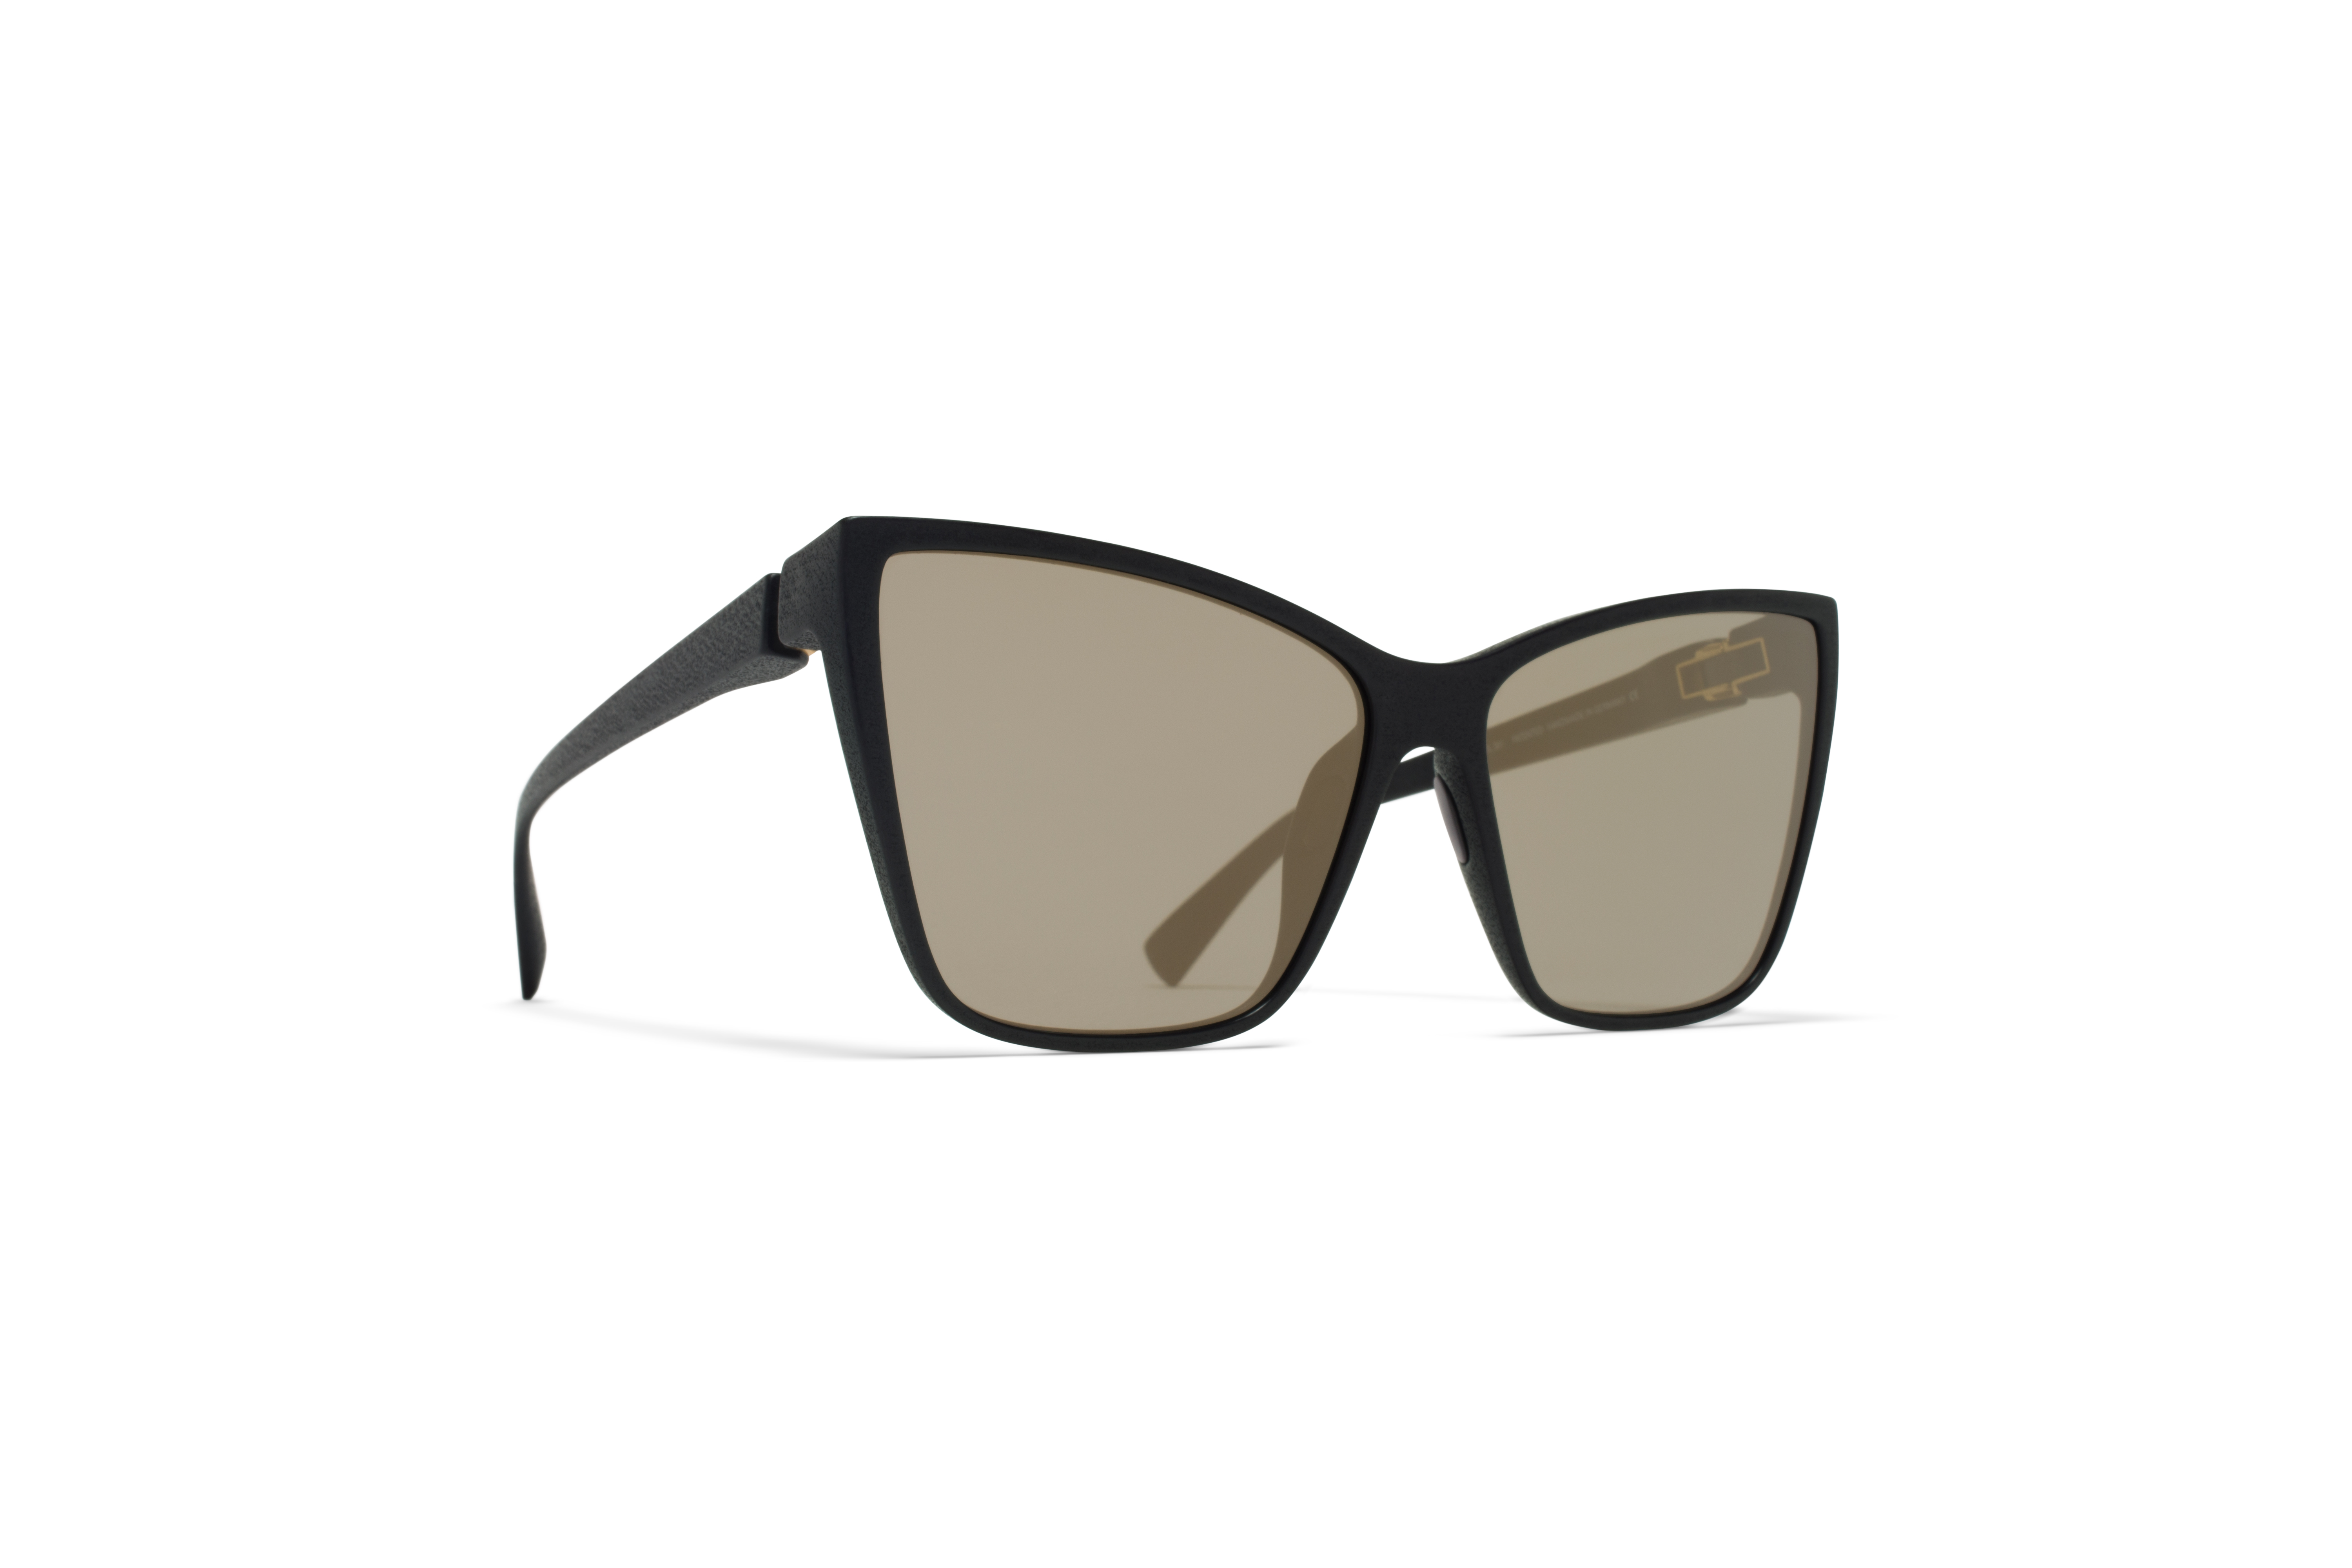 MYKITA Mylon Sun Roux Md1 Pitch Black Gunmetal Fla590b41dee2ee6